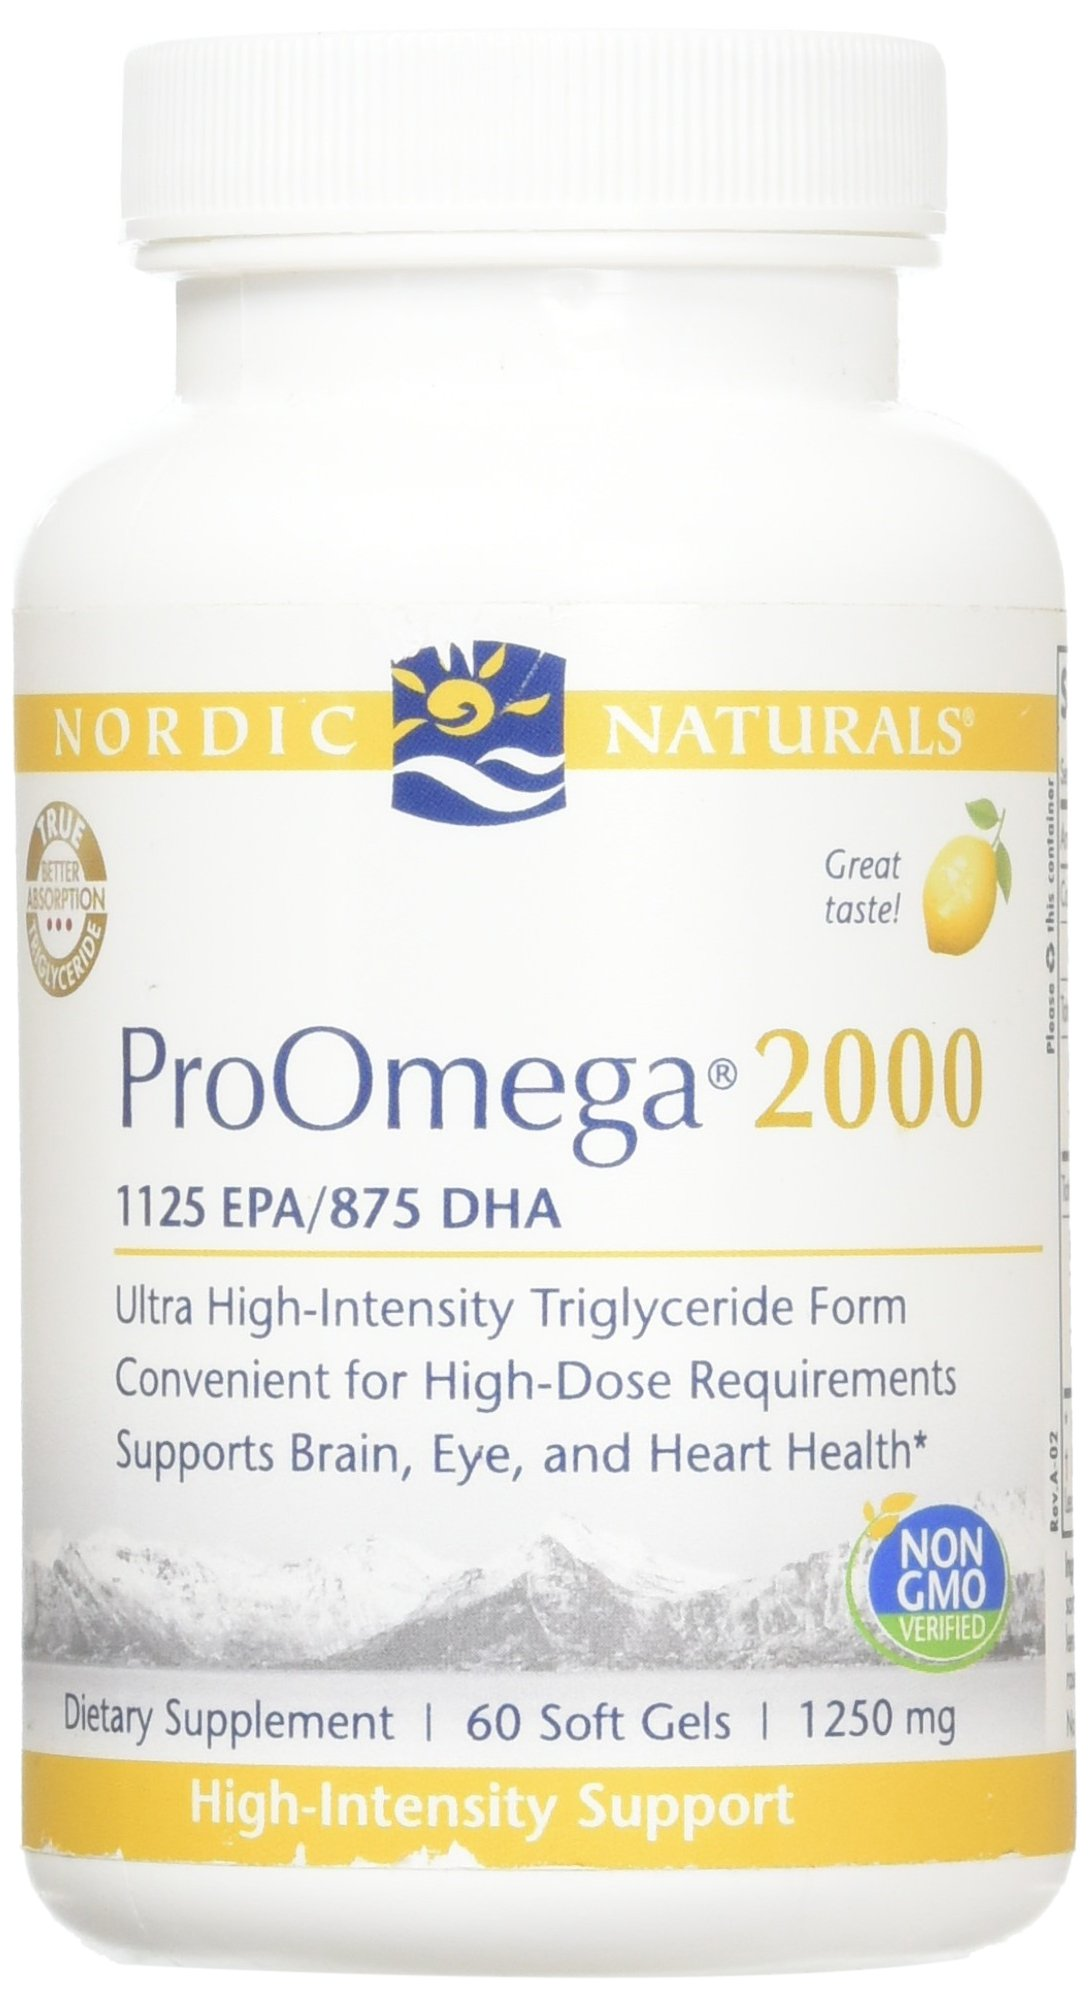 Nordic Naturals Pro - ProOmega 2000, Highest-concentration, Triglyceride-form Omega Oil